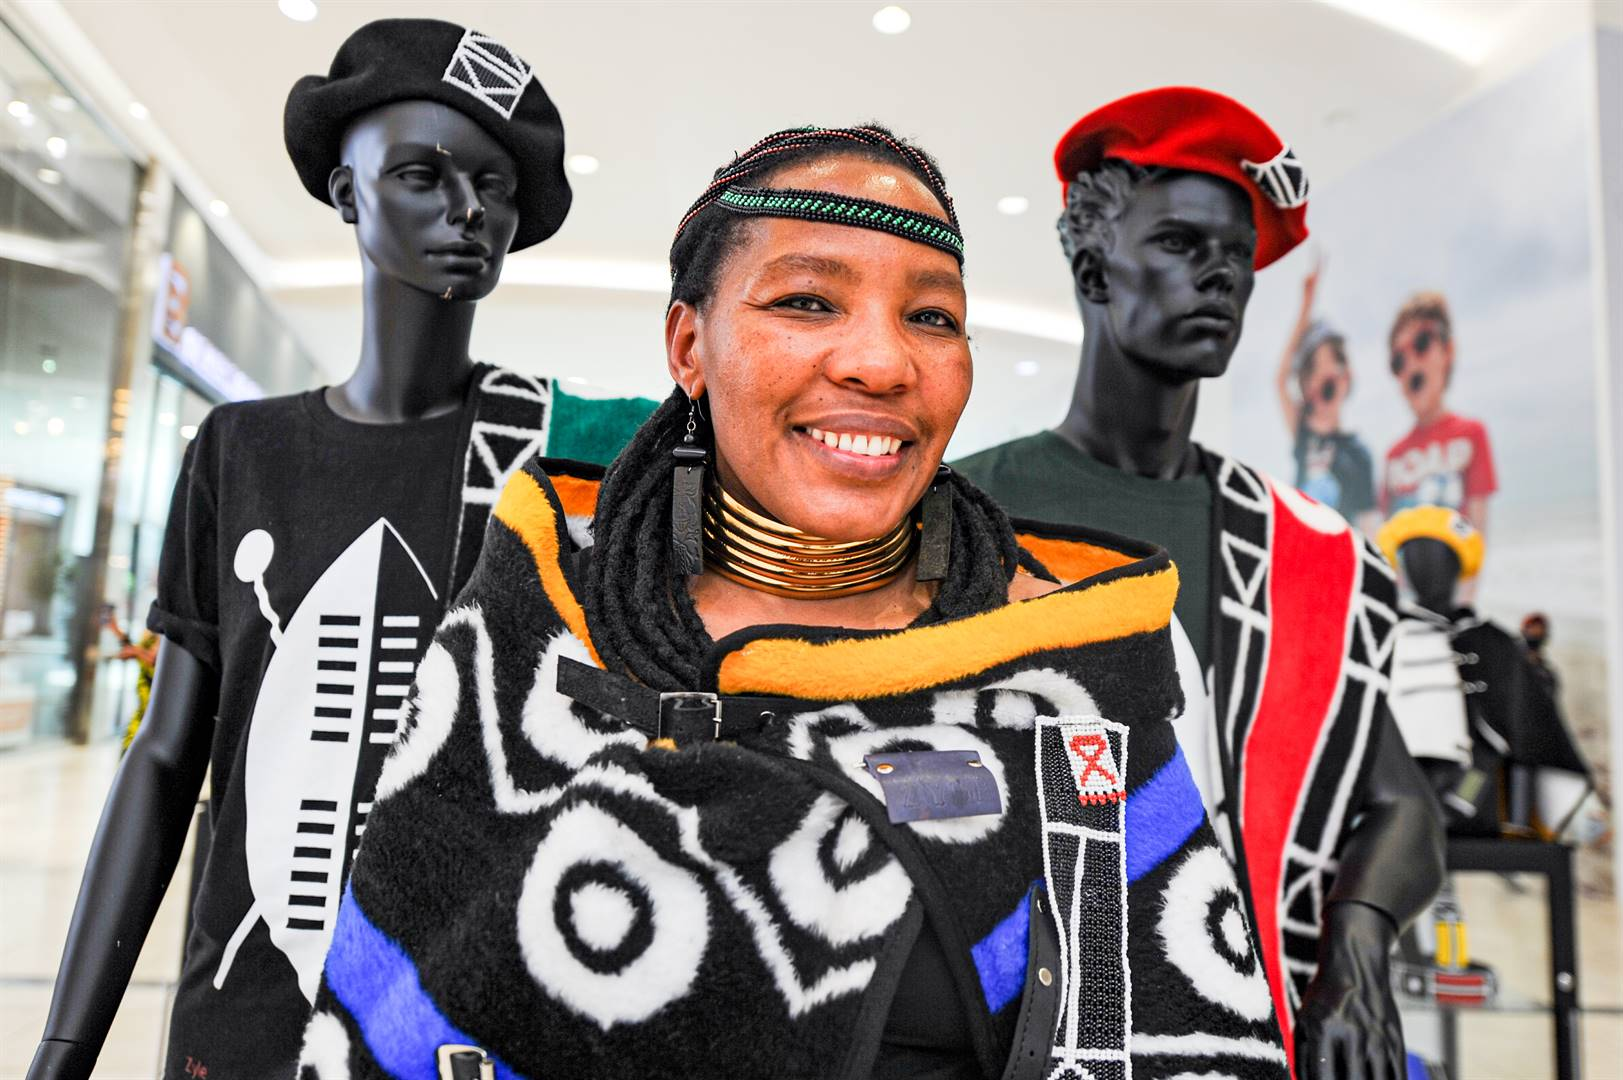 Phumzile Ntuli, head designer and owner of Zyle Clothing at her stall at Mall of Africa. Picture: Rosetta Msimango